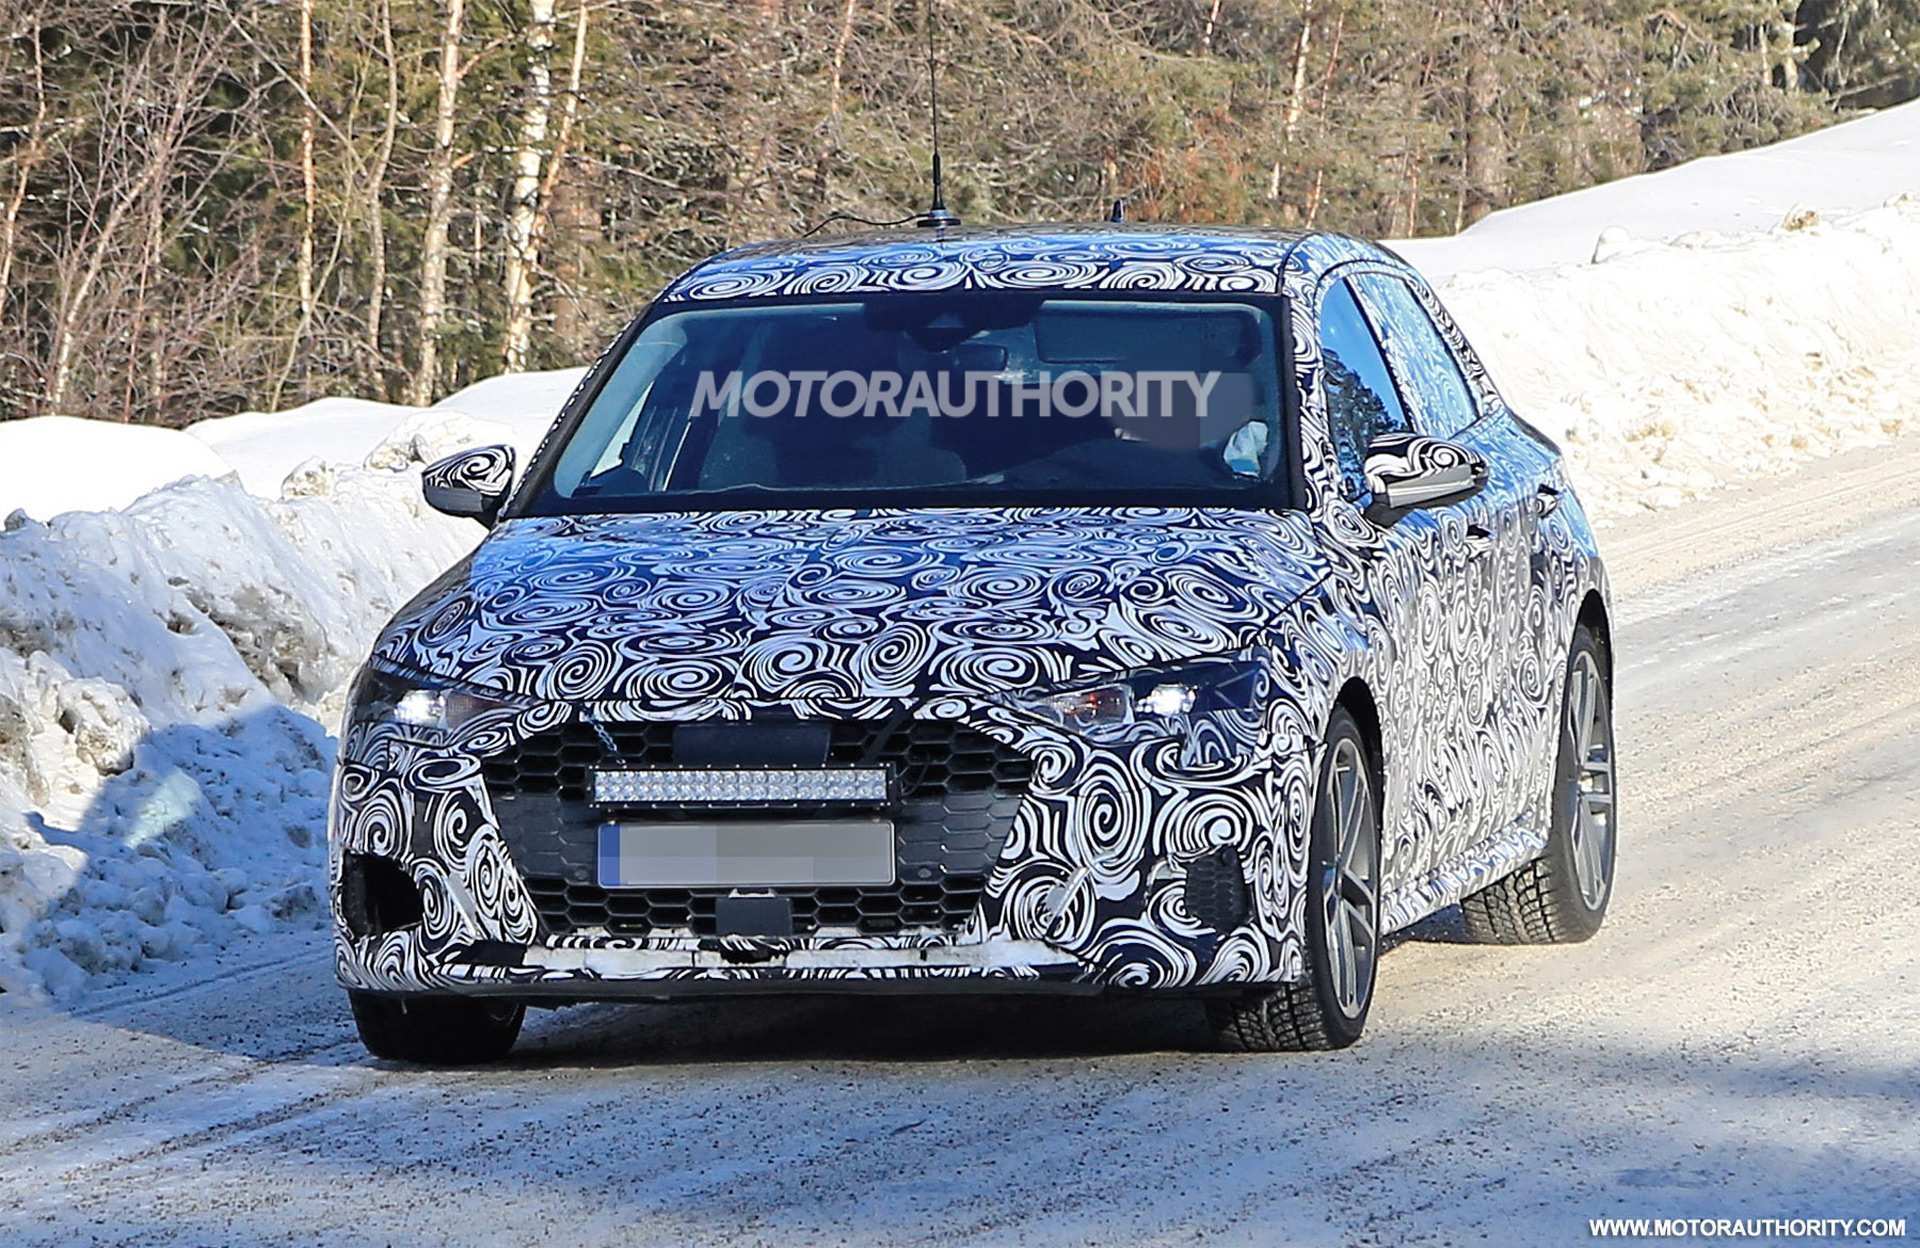 53 All New 2020 Audi A3 Sportback Usa Price And Release Date